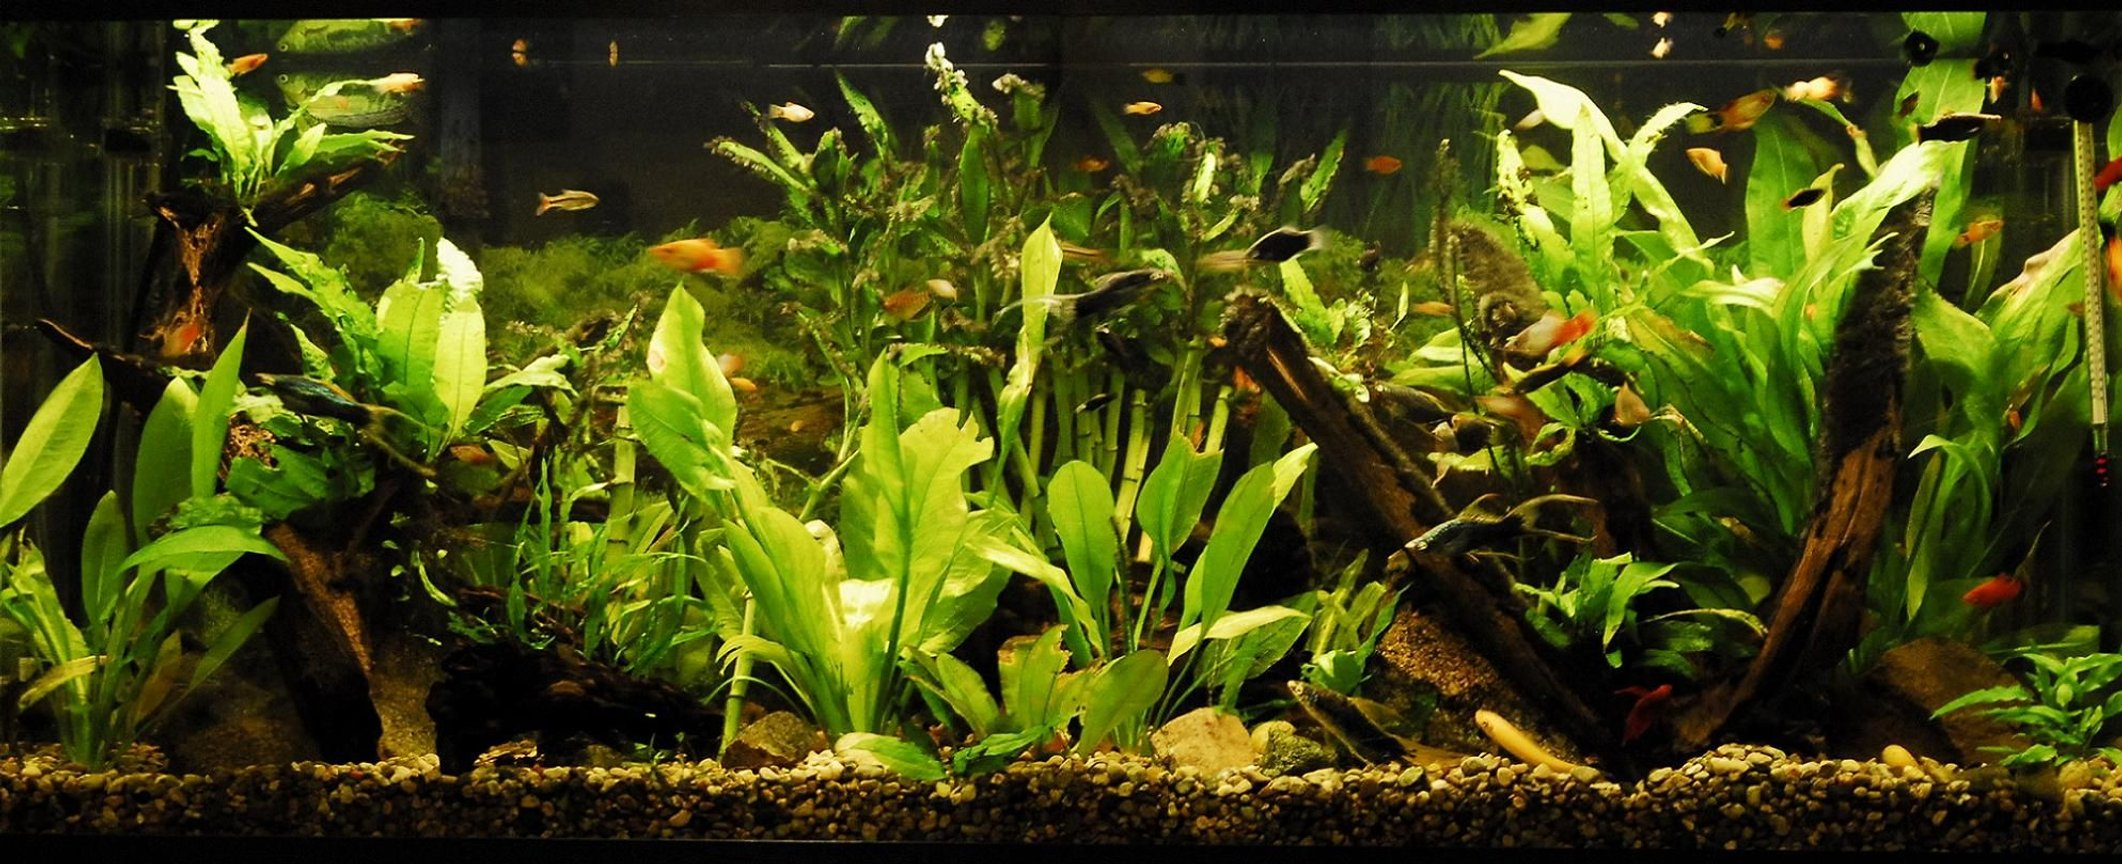 55 gallons planted tank (mostly live plants and fish) - 55 Gallon Community Planted Tank, Malaysian Driftwood, CO2, Angelfish, Neon Tetra, Sword tails, Platties, Mollies, Gouramis, Many Plants. LifeGlo2 6700K 40W. Millennium 3000 Filter. Taken 1/3/2009